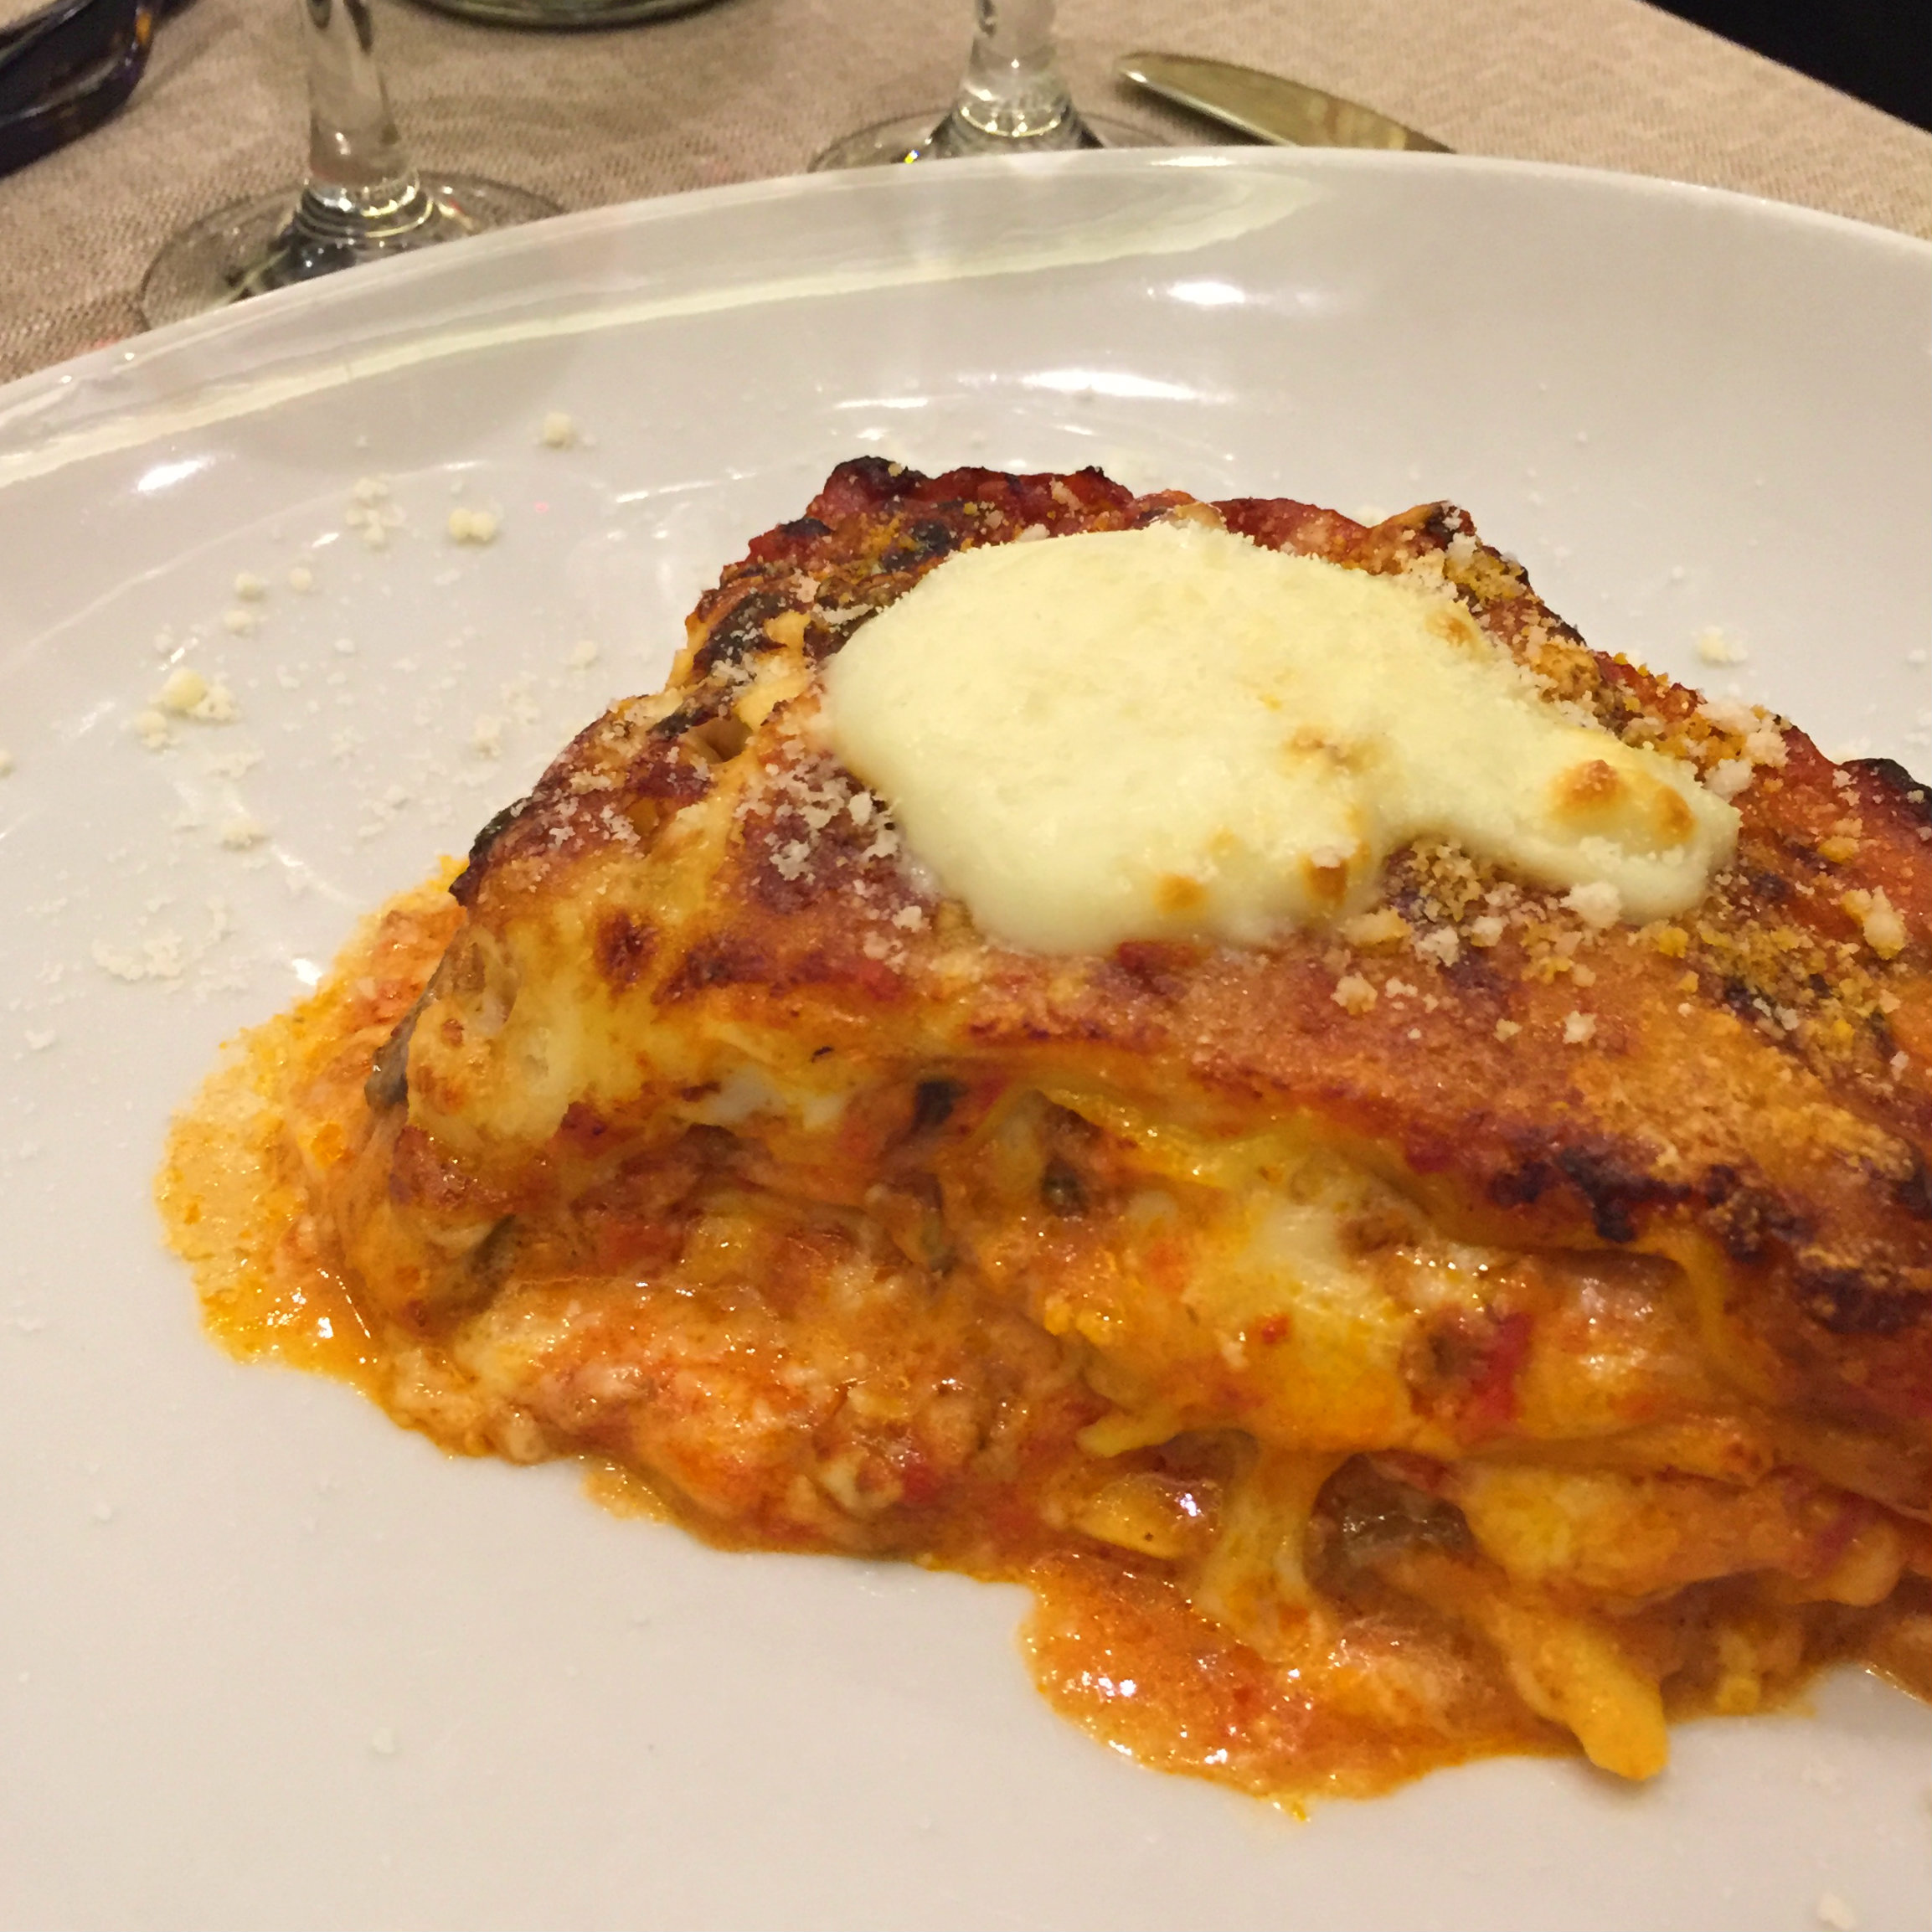 Wood-fired lasagna, La Tavernaccia